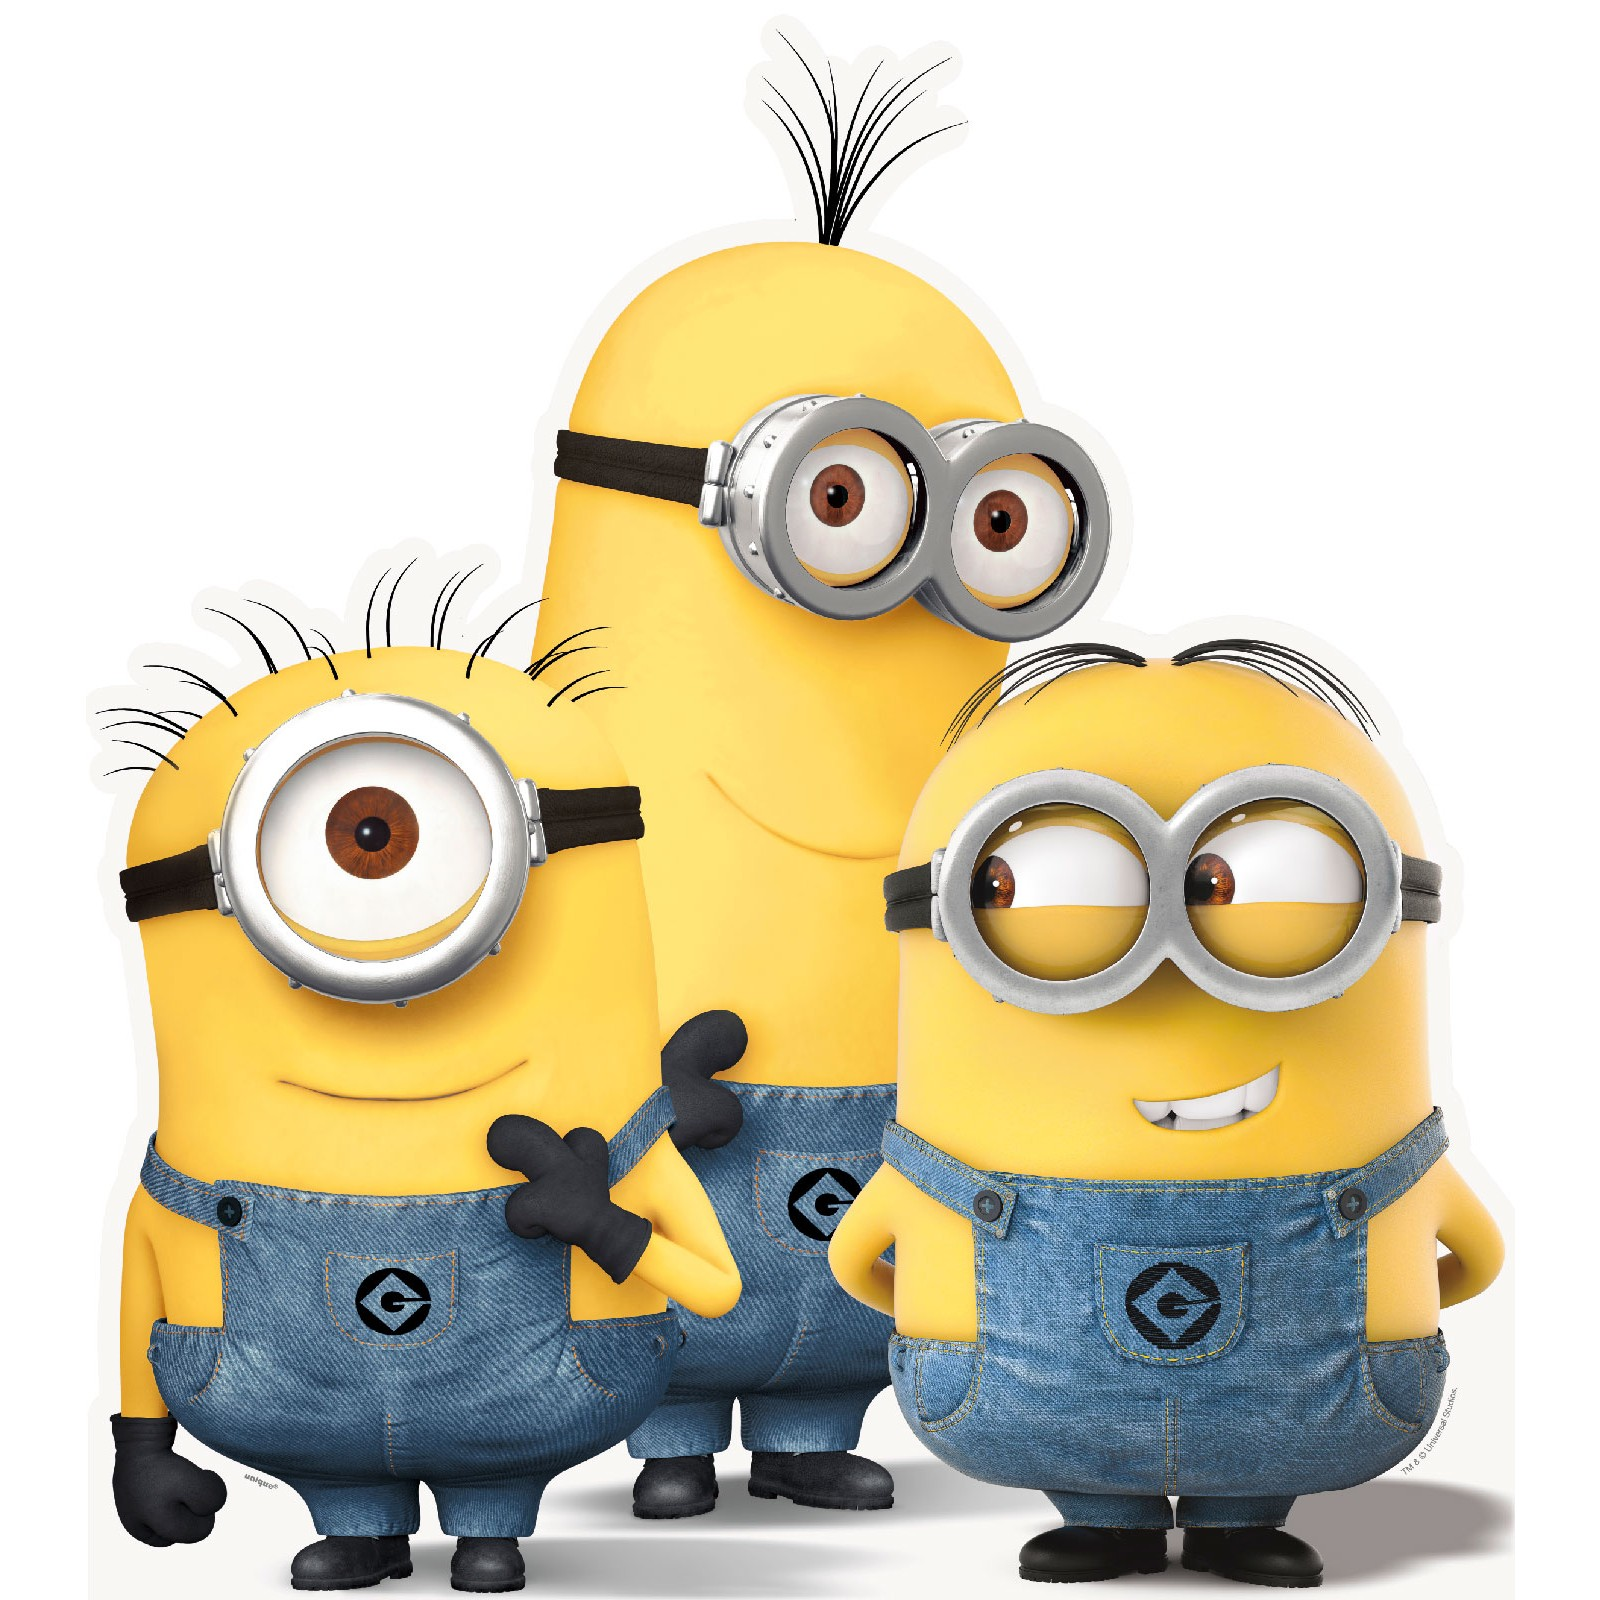 Despicable me 3 hd wallpapers - Image minions ...